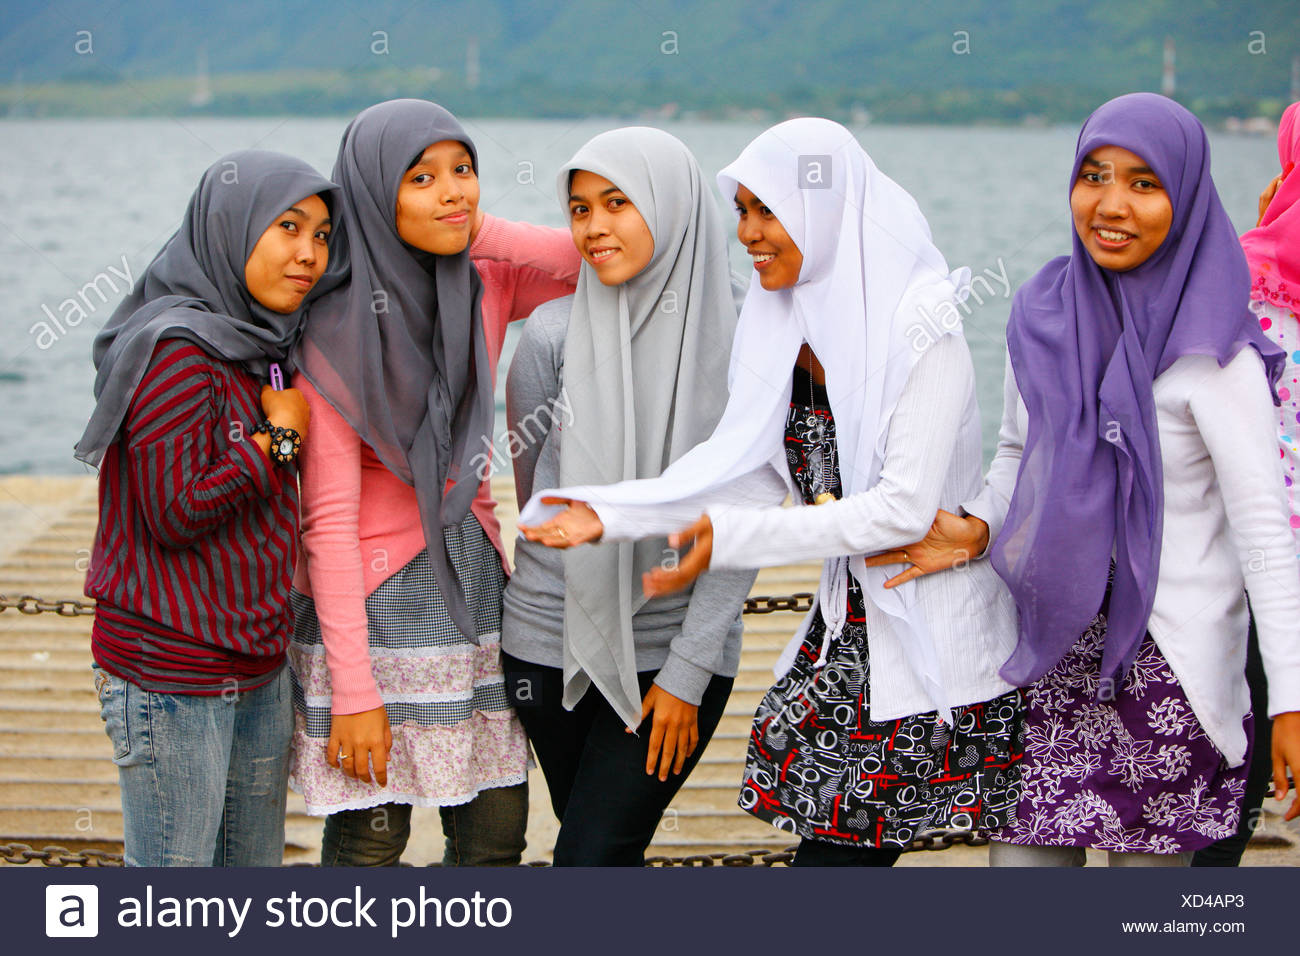 island lake muslim women dating site Reproduction in whole or in part in any form or medium without express written  permission of idg communications is prohibited idg sites: pc.